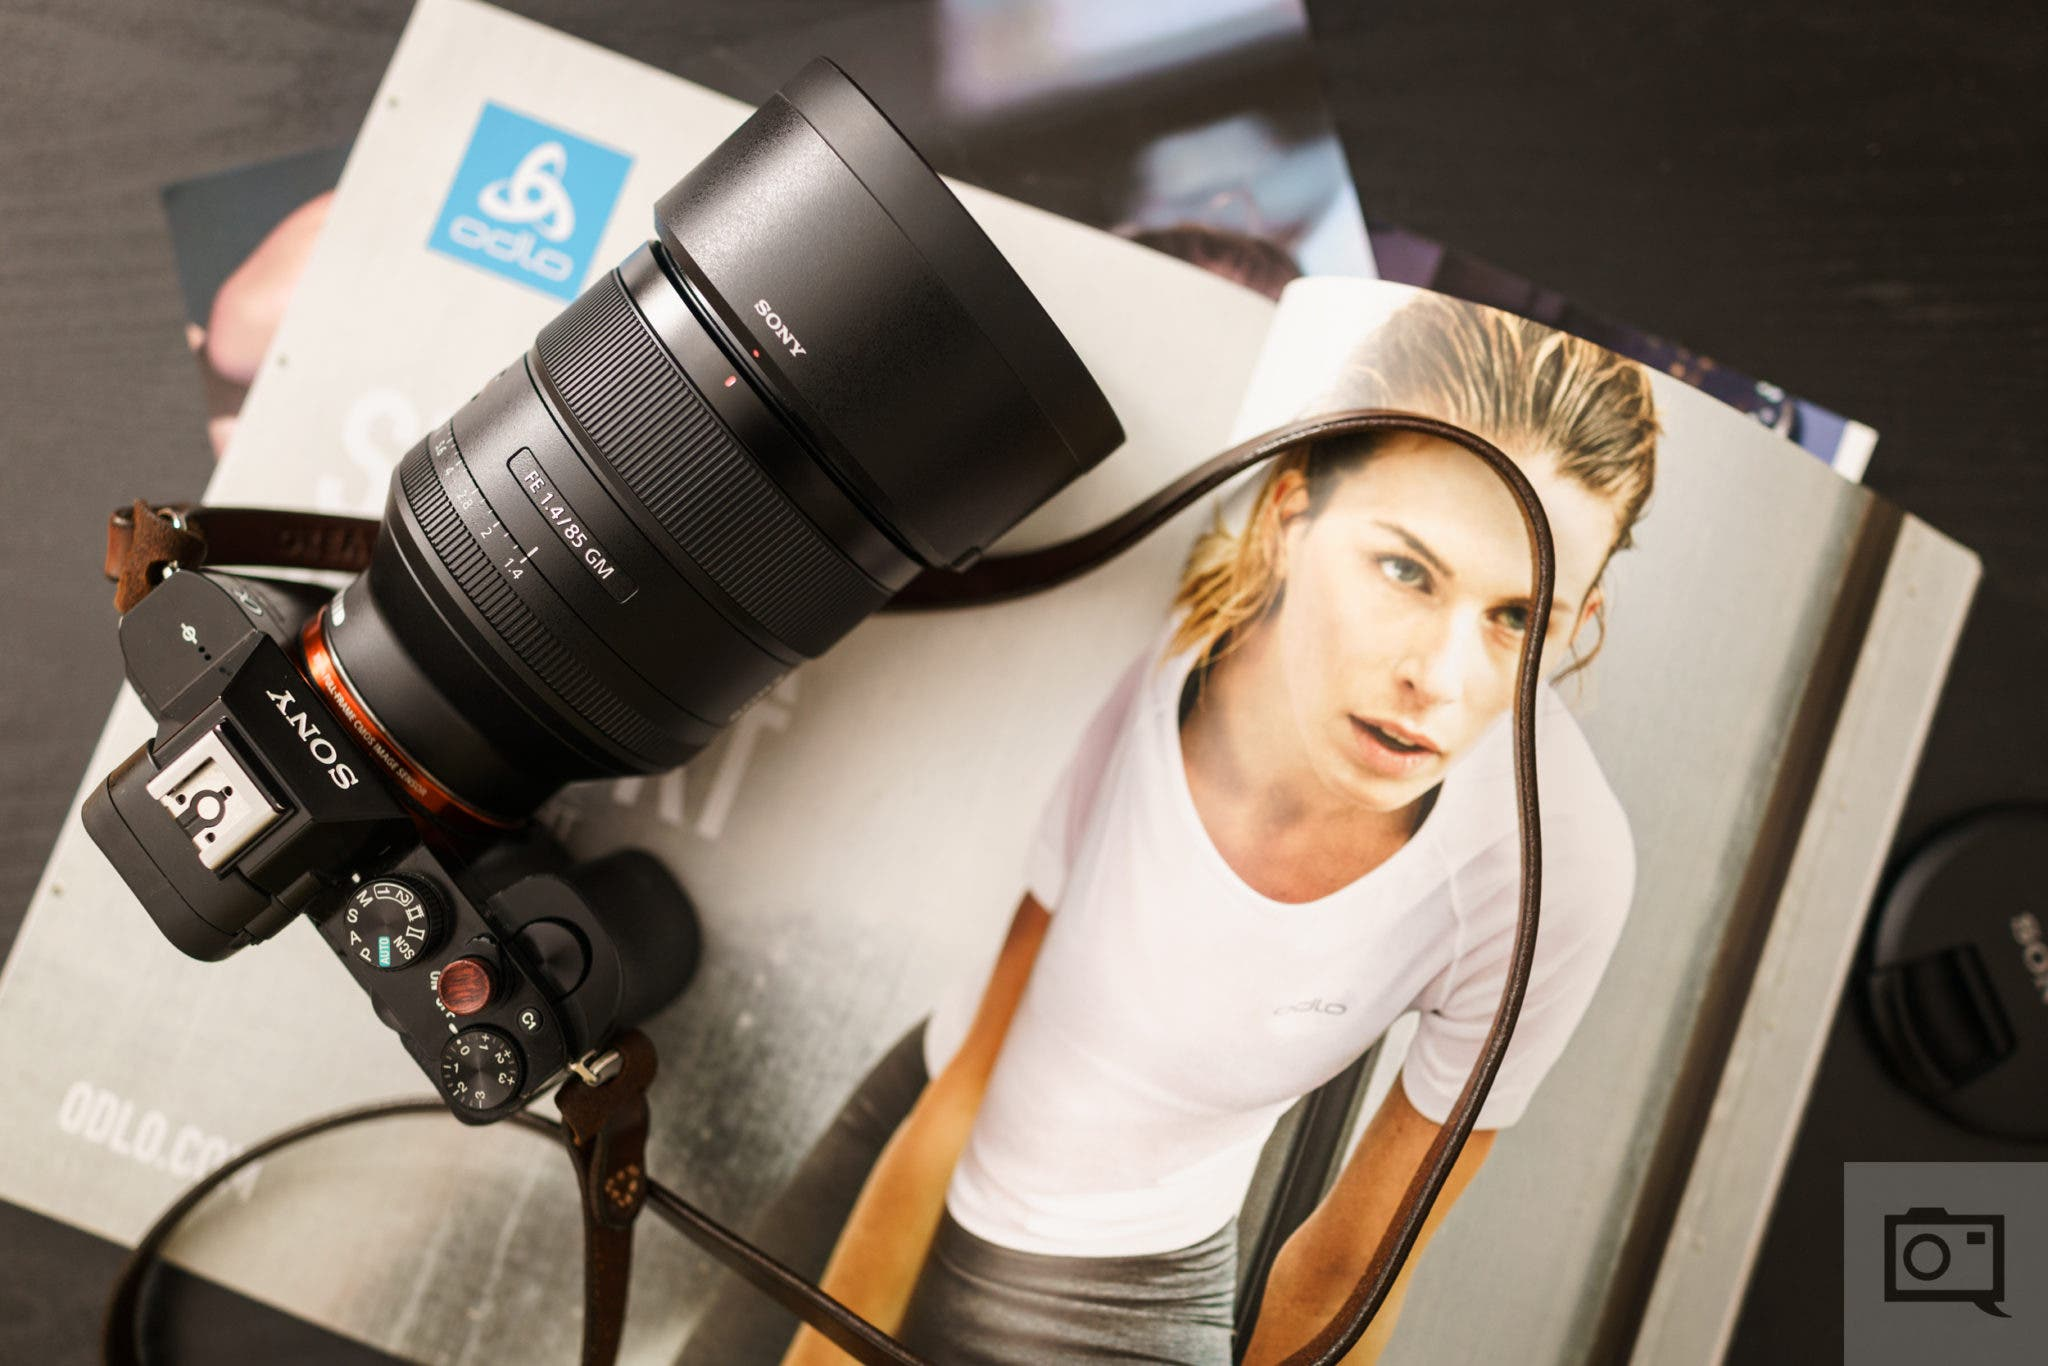 9 E Mount Lenses for Portraits That Get the Most Out of Sony's Eye AF